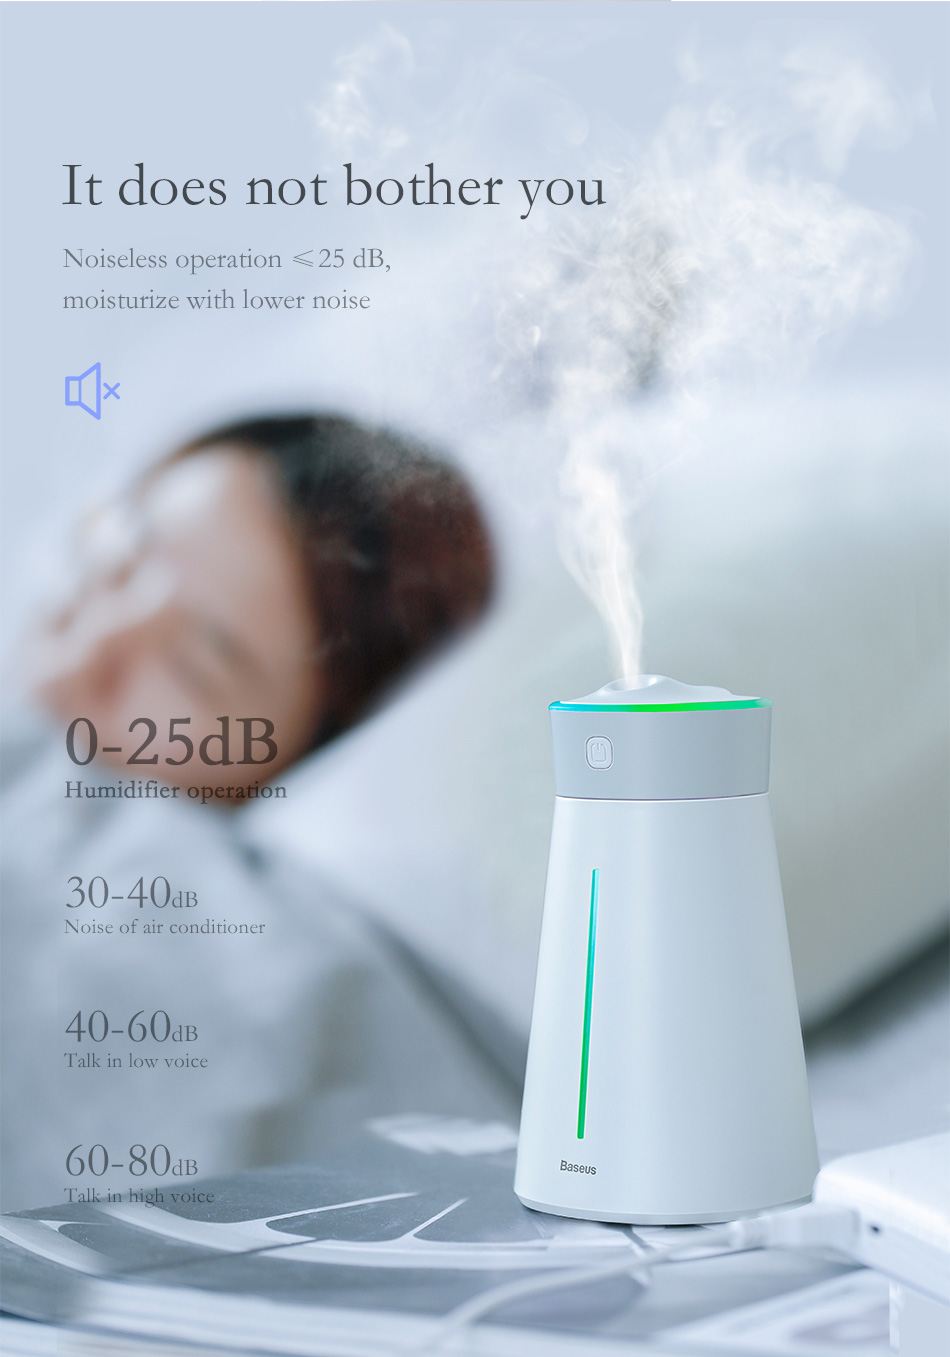 Baseus Humidifier Aroma Essential Oil Diffuser Air Mist Maker with 7 Color Light for Office Home Car